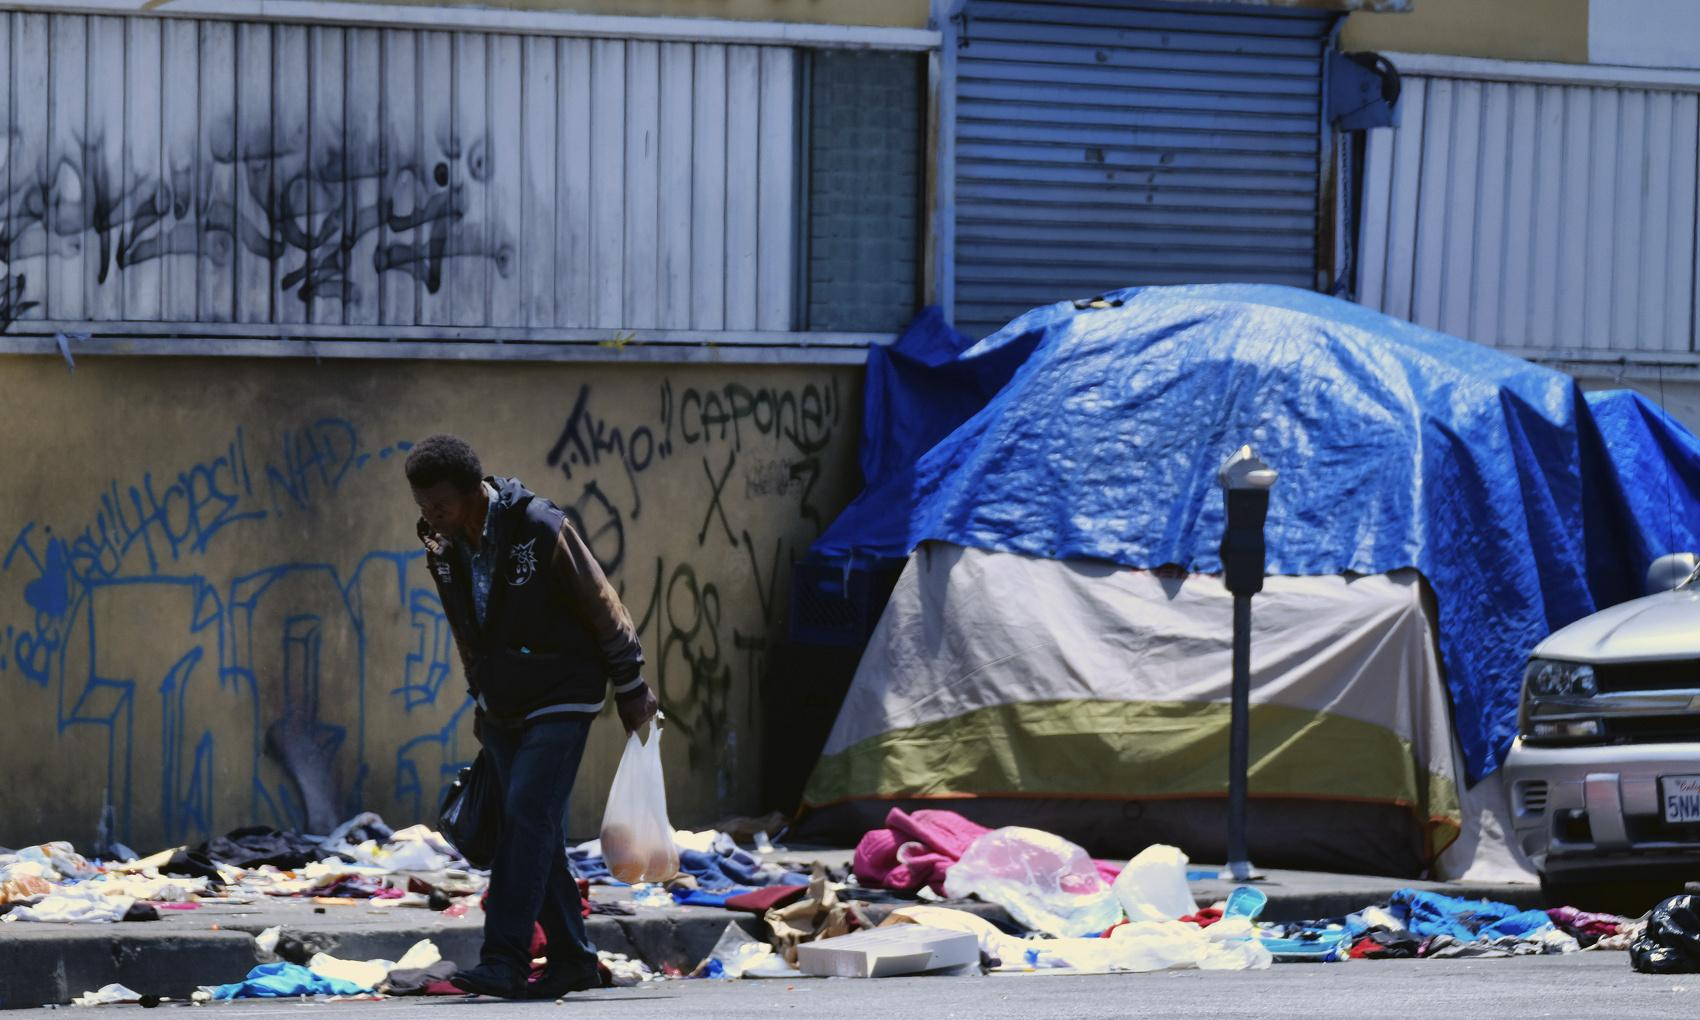 US ministry accused of luring homeless people into forced labor